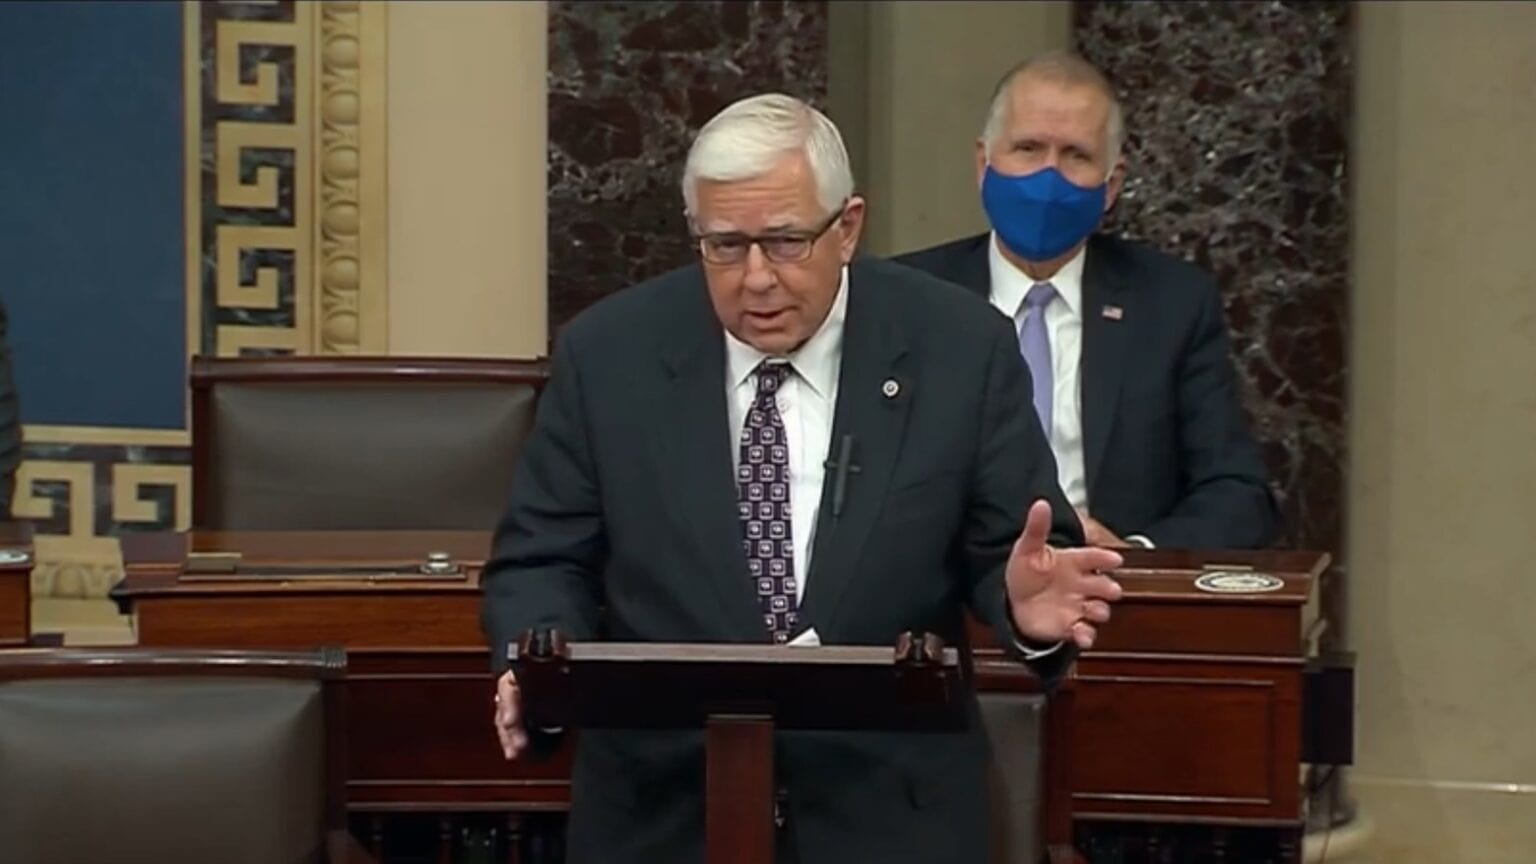 Senator Michael B Enzi says iPads and other electronic devices should be allowed on the Senate floor.